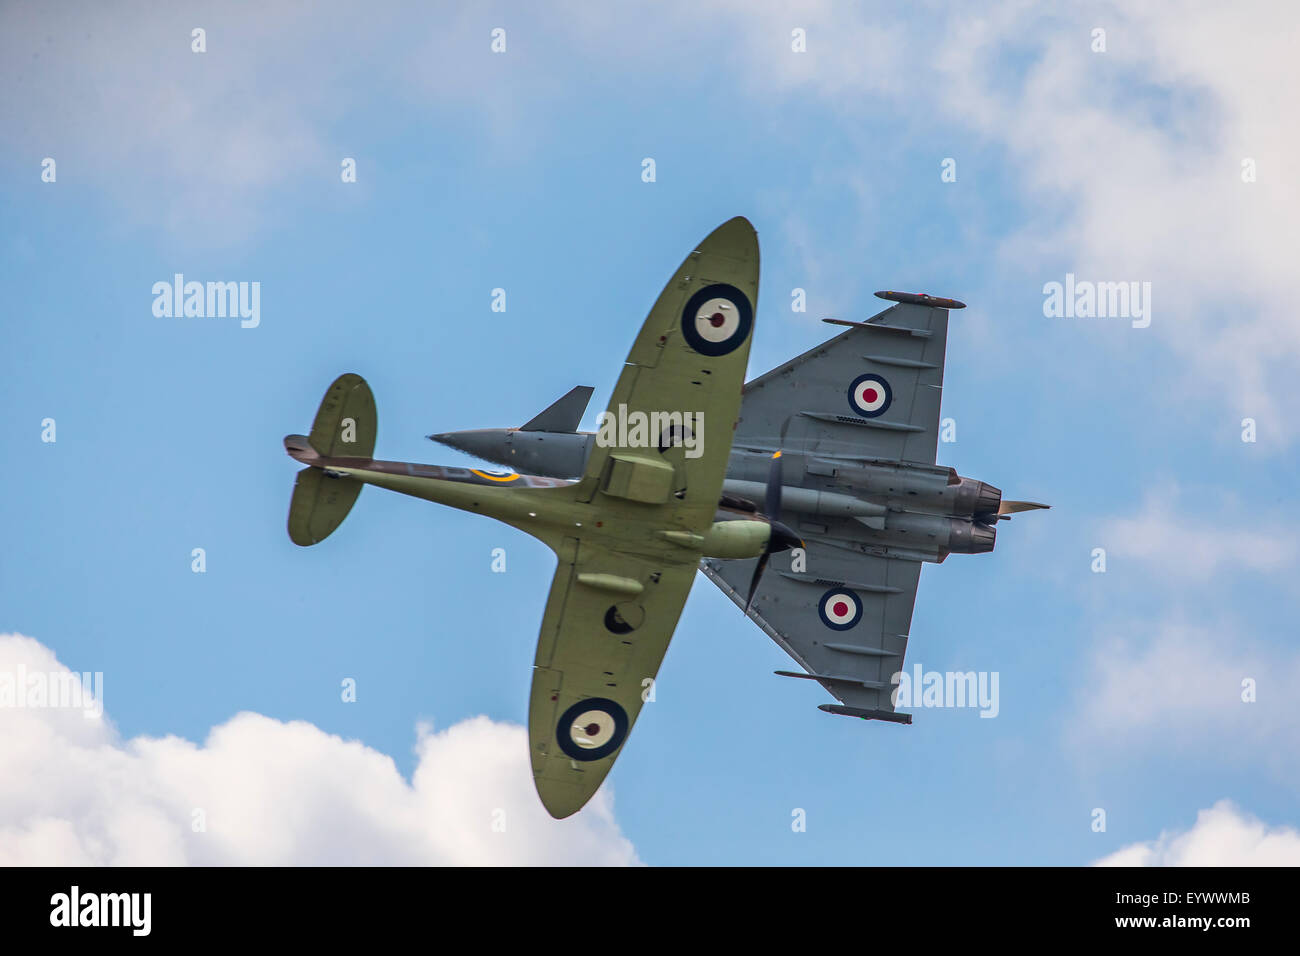 Battle of Britain 75th Anniversary Airshow held at Biggin Hill in Kent, England. Stock Photo